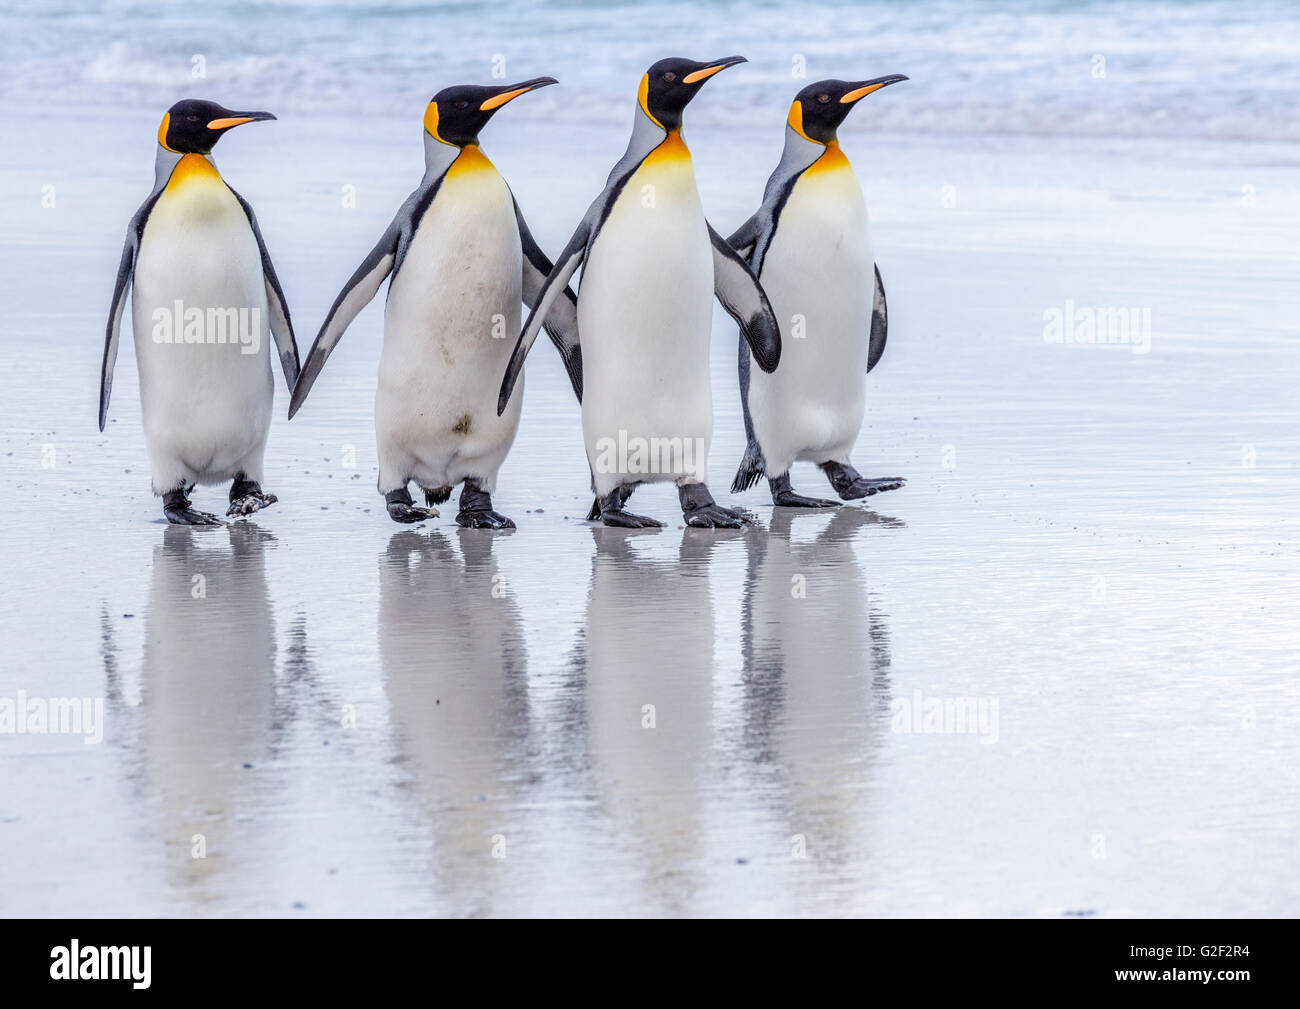 Four King Penguins walk in close formation along a beach - Stock Image